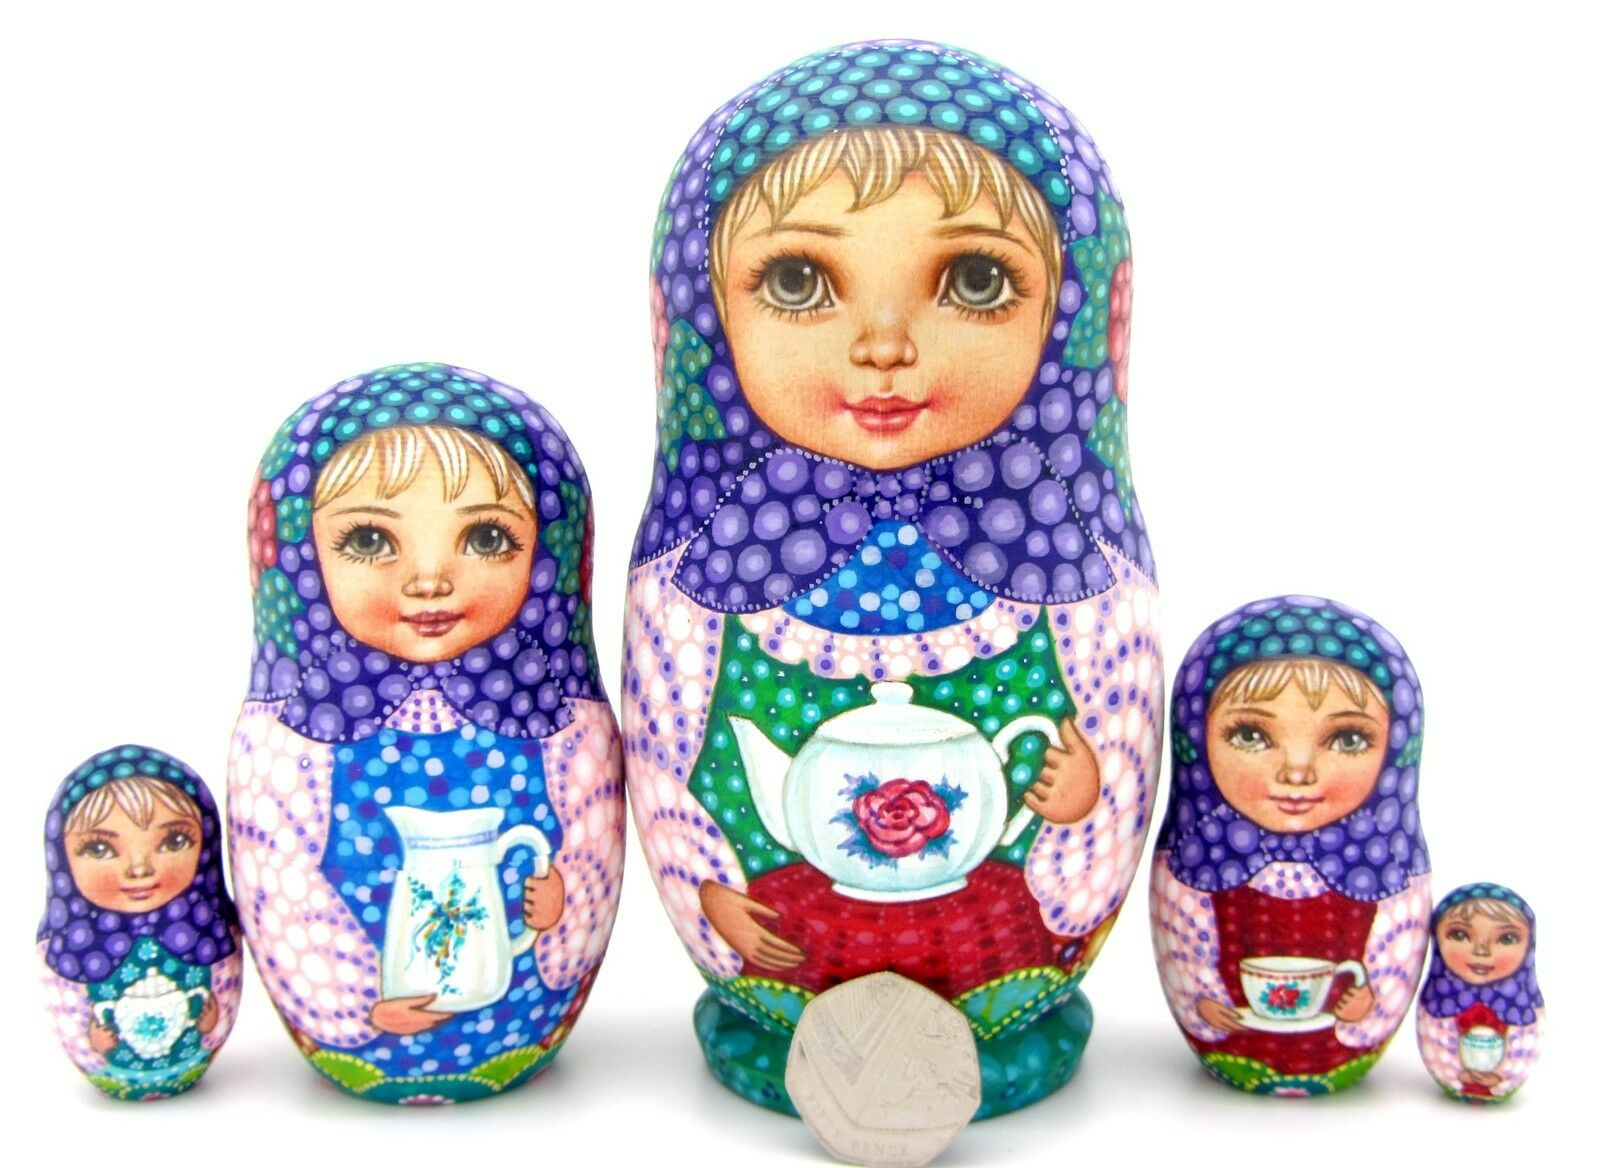 Nesting Russian Dolls Matryoshka Babushka 5 Girls SOKIRKINA MATT Tea Drinking